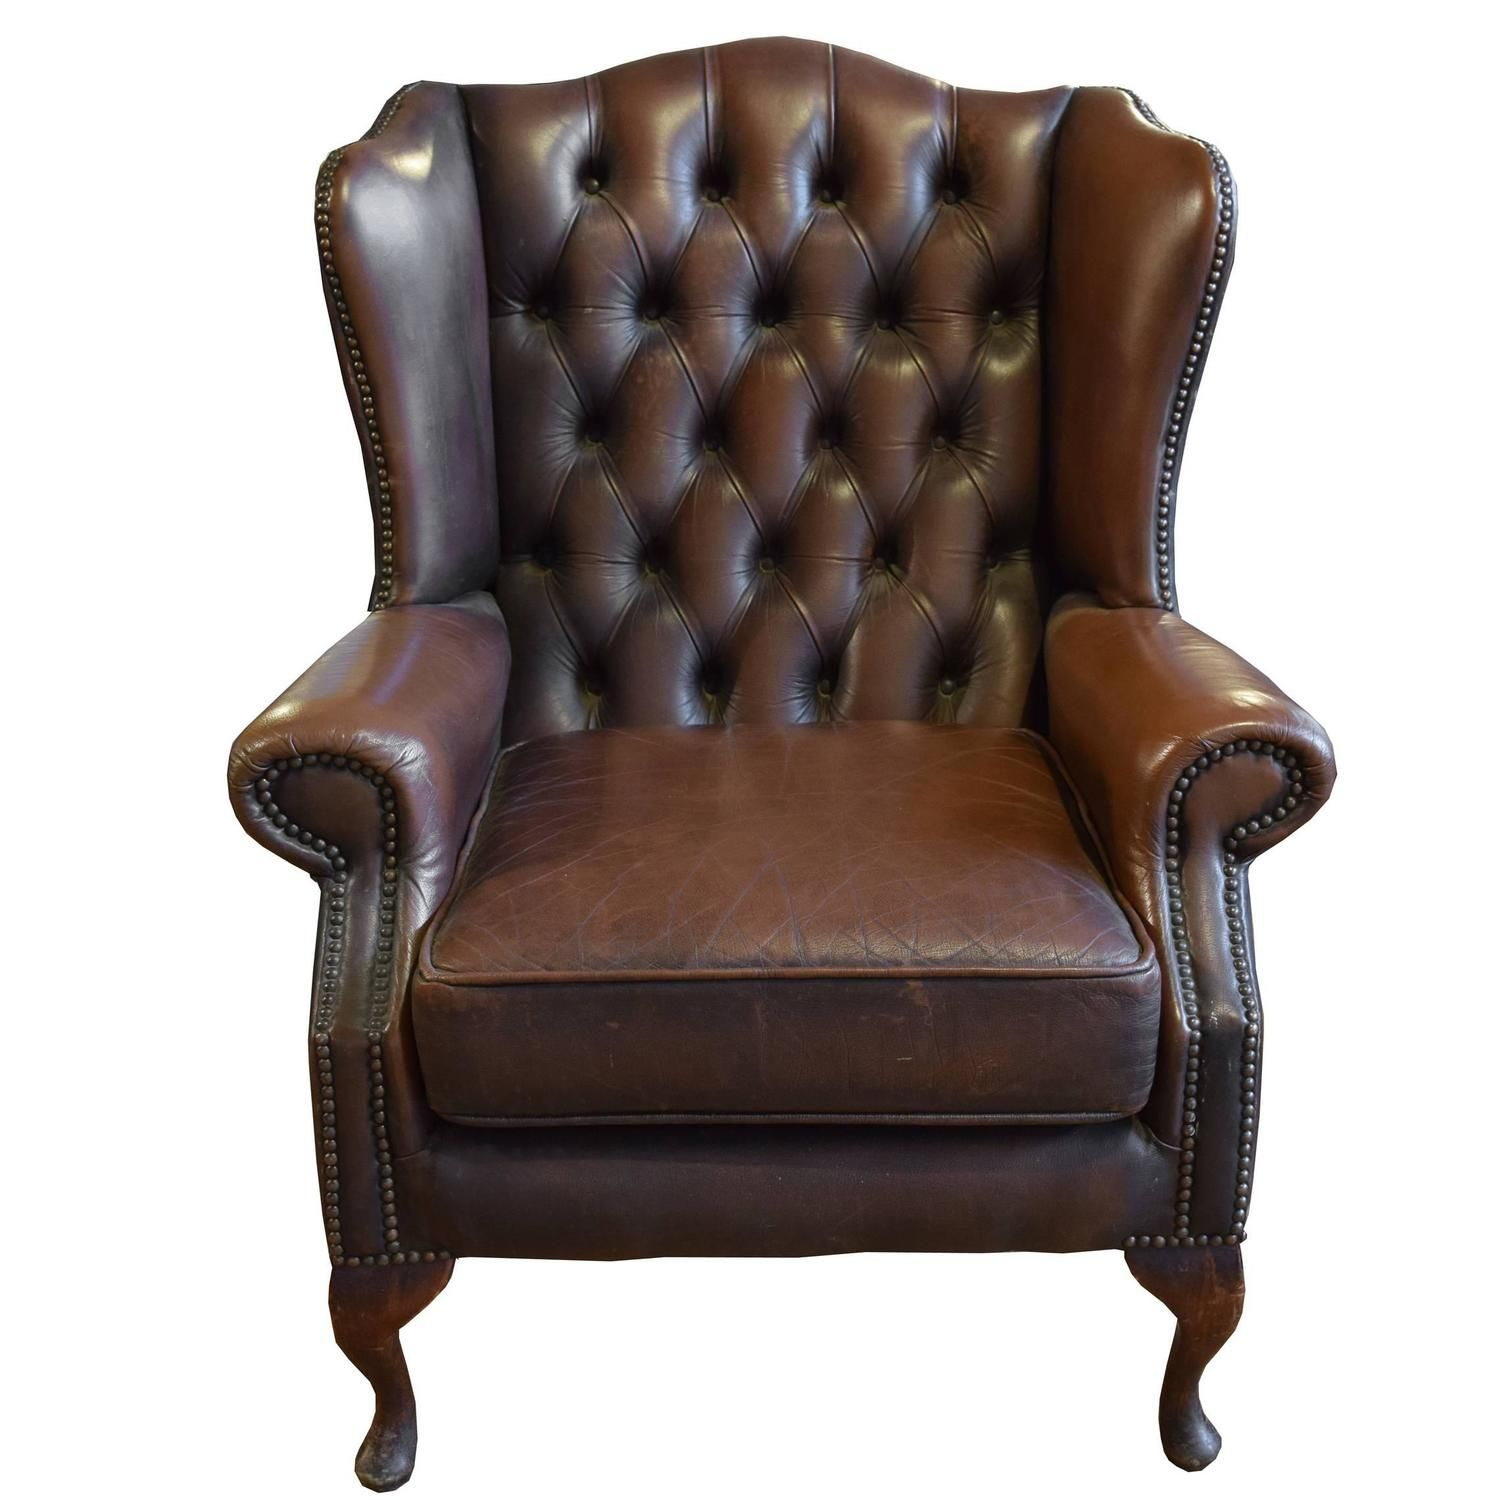 Seater queen anne high back wing sofa uk manufactured antique green - Tufted Leather Wing Chair